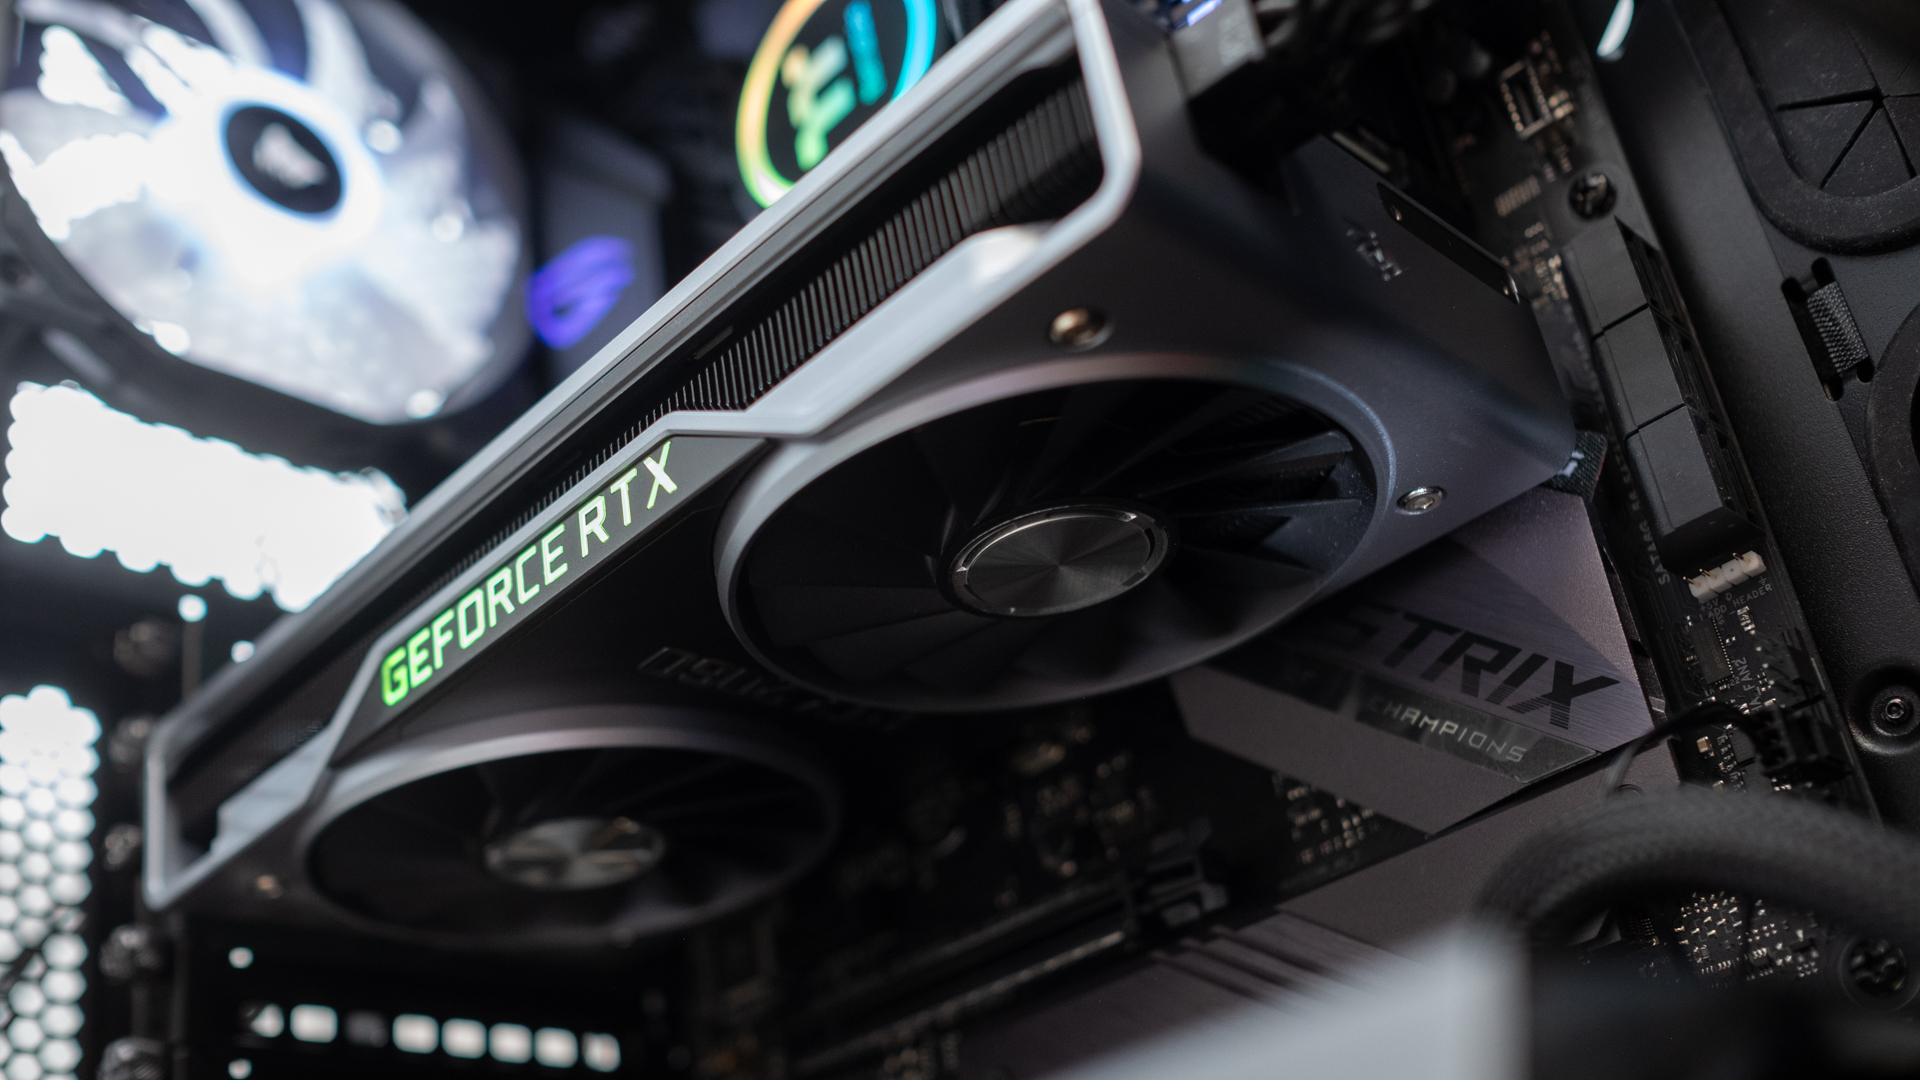 Nvidia's RTX graphics cards start racking up sales led by RTX 2060